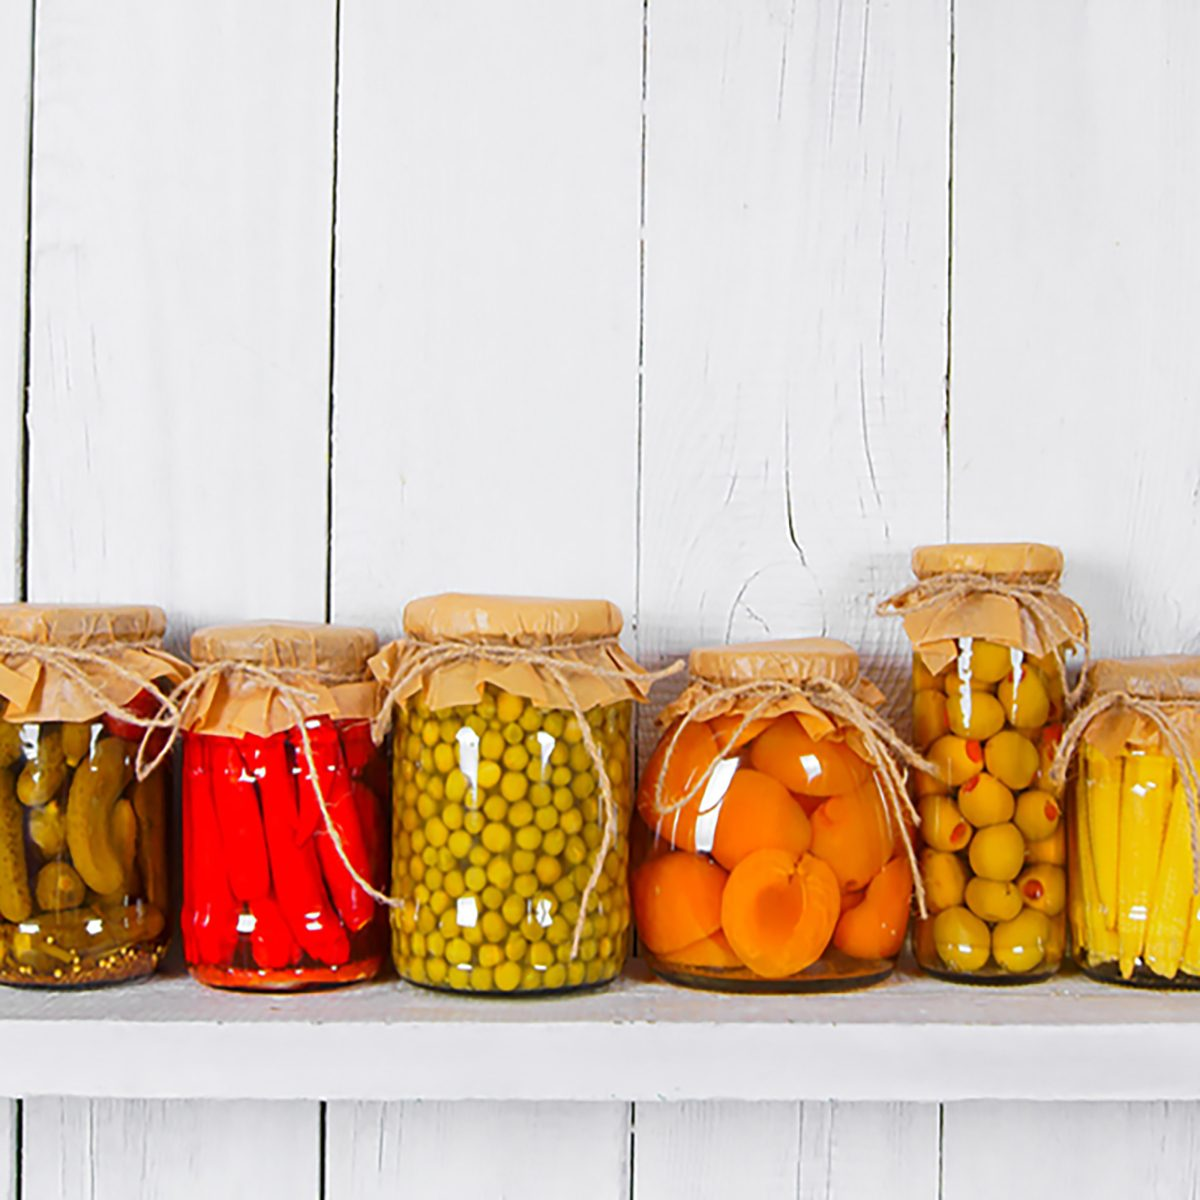 Preserved food in glass jars, on a wooden shelf. Various marinaded food